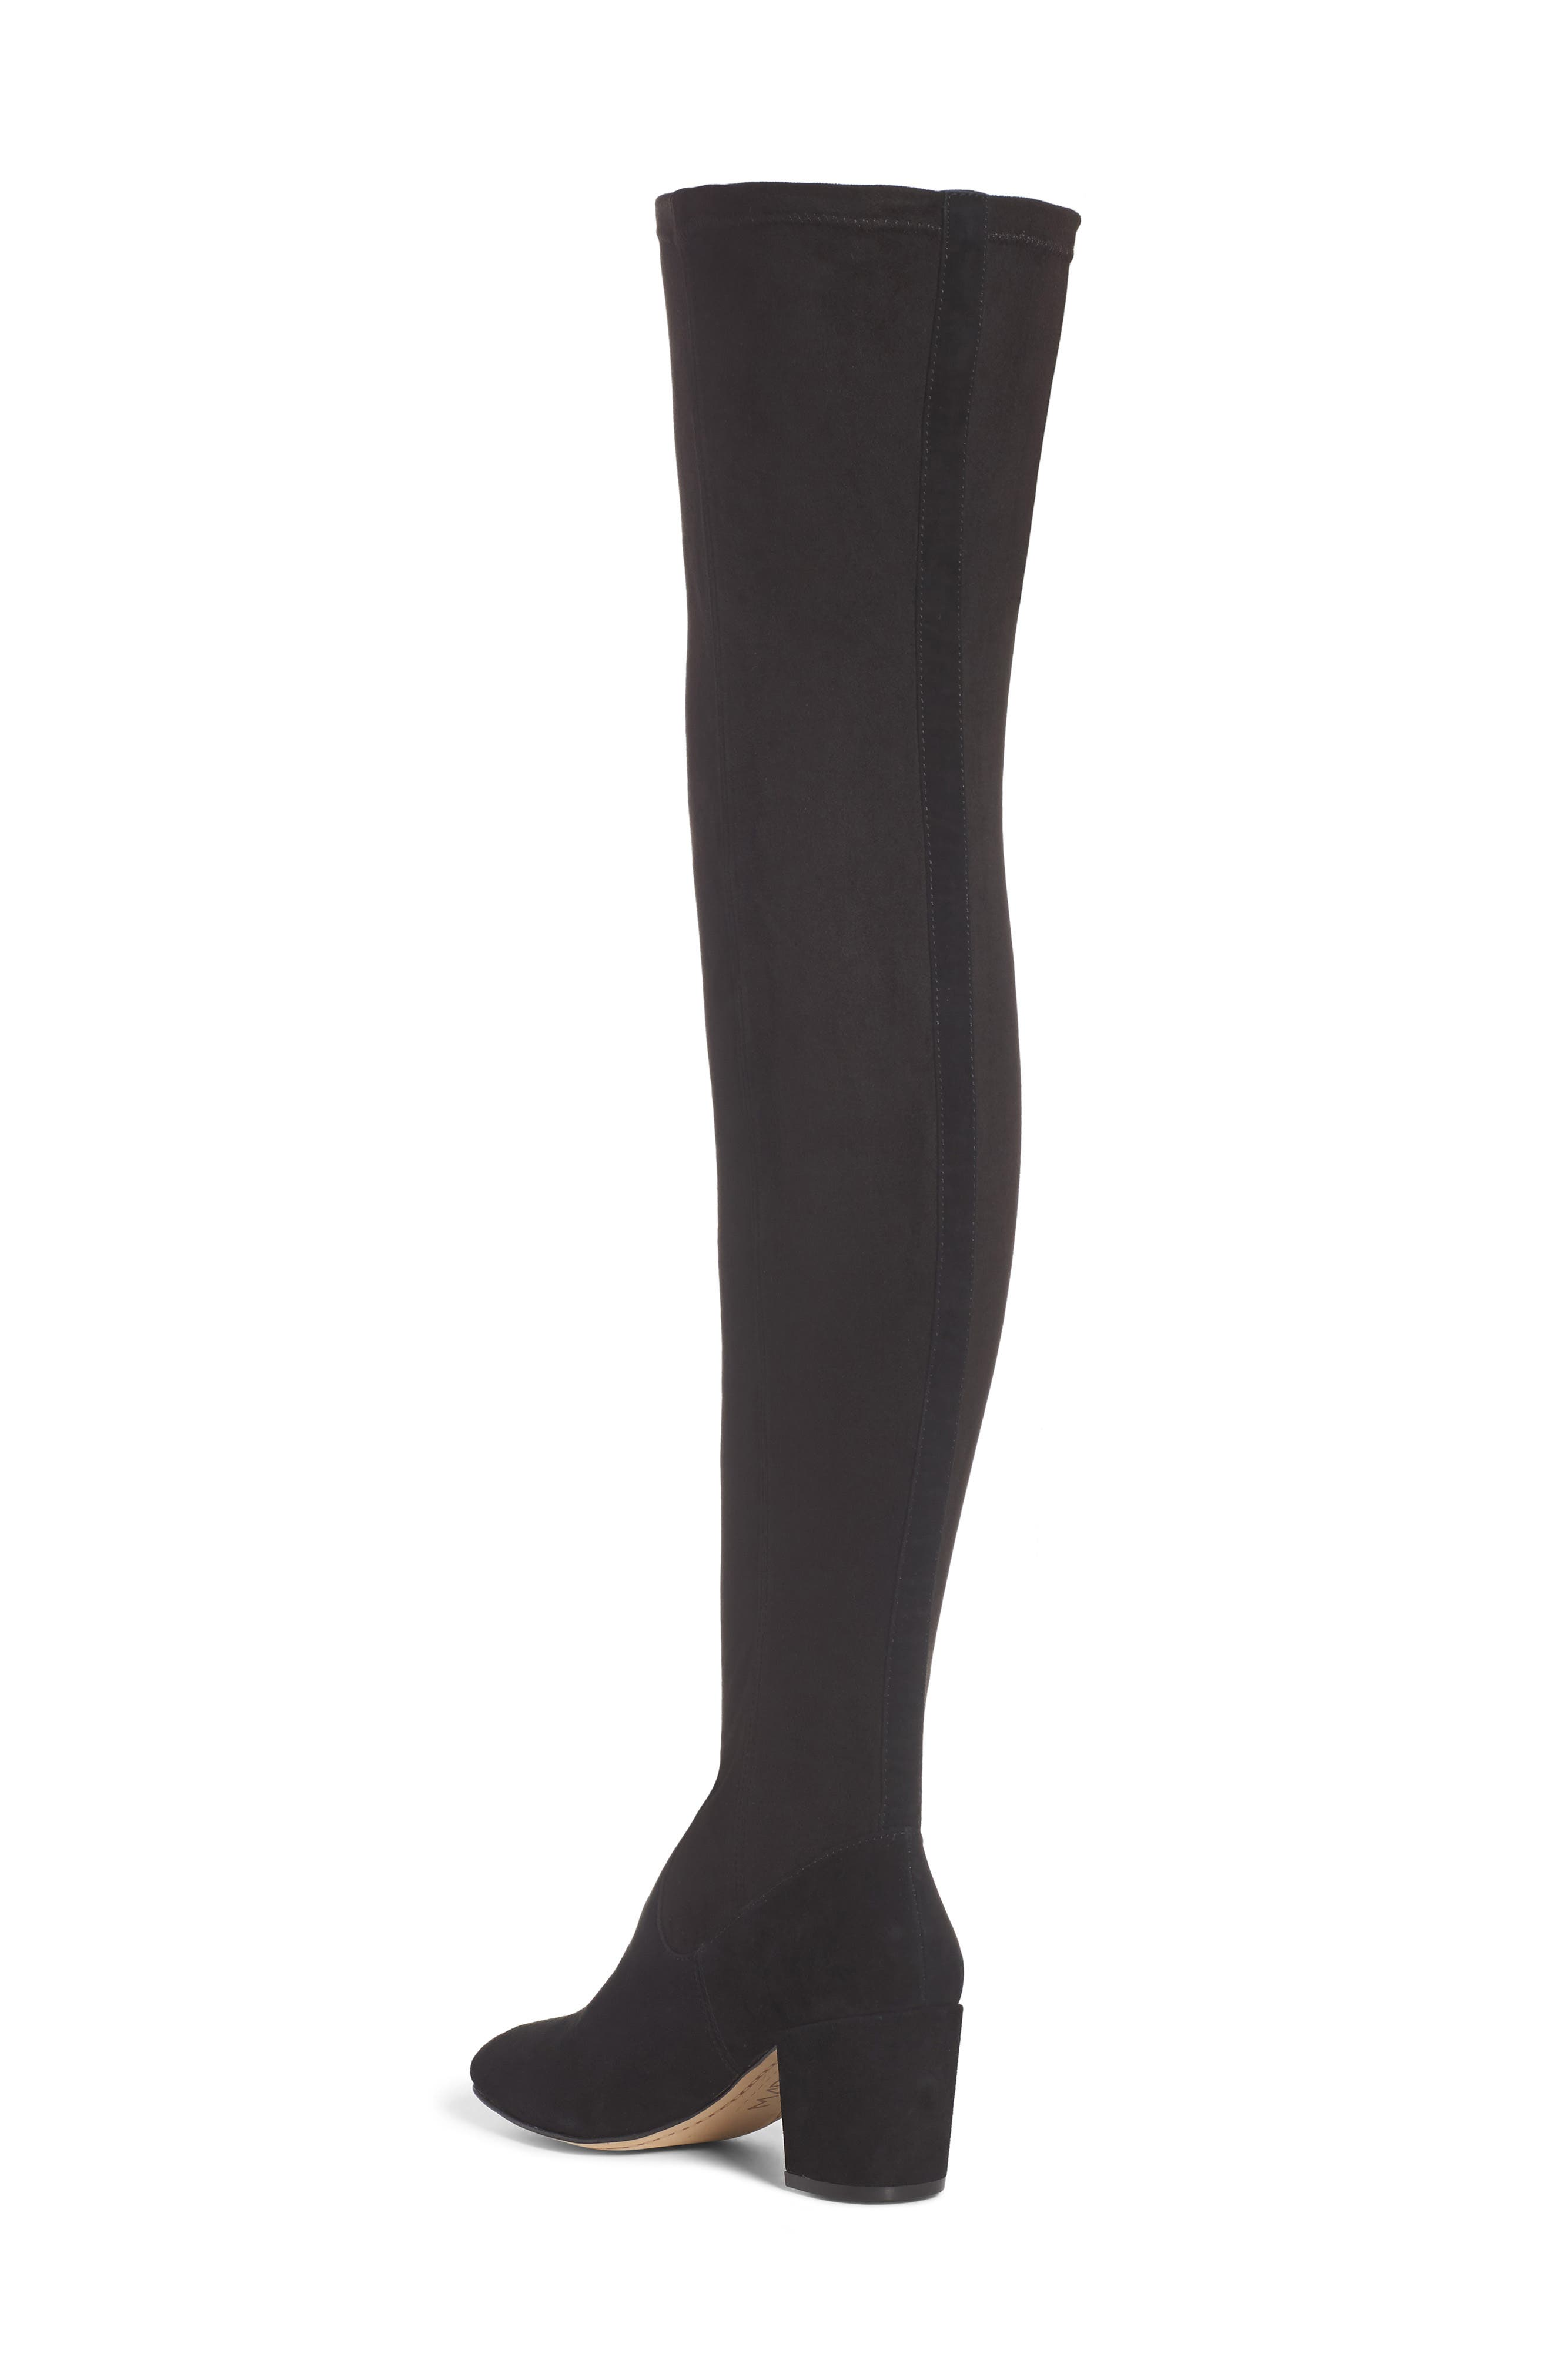 M4D3 Sobrina Over the Knee Boot,                             Alternate thumbnail 2, color,                             Black Suede/ Black Fabric